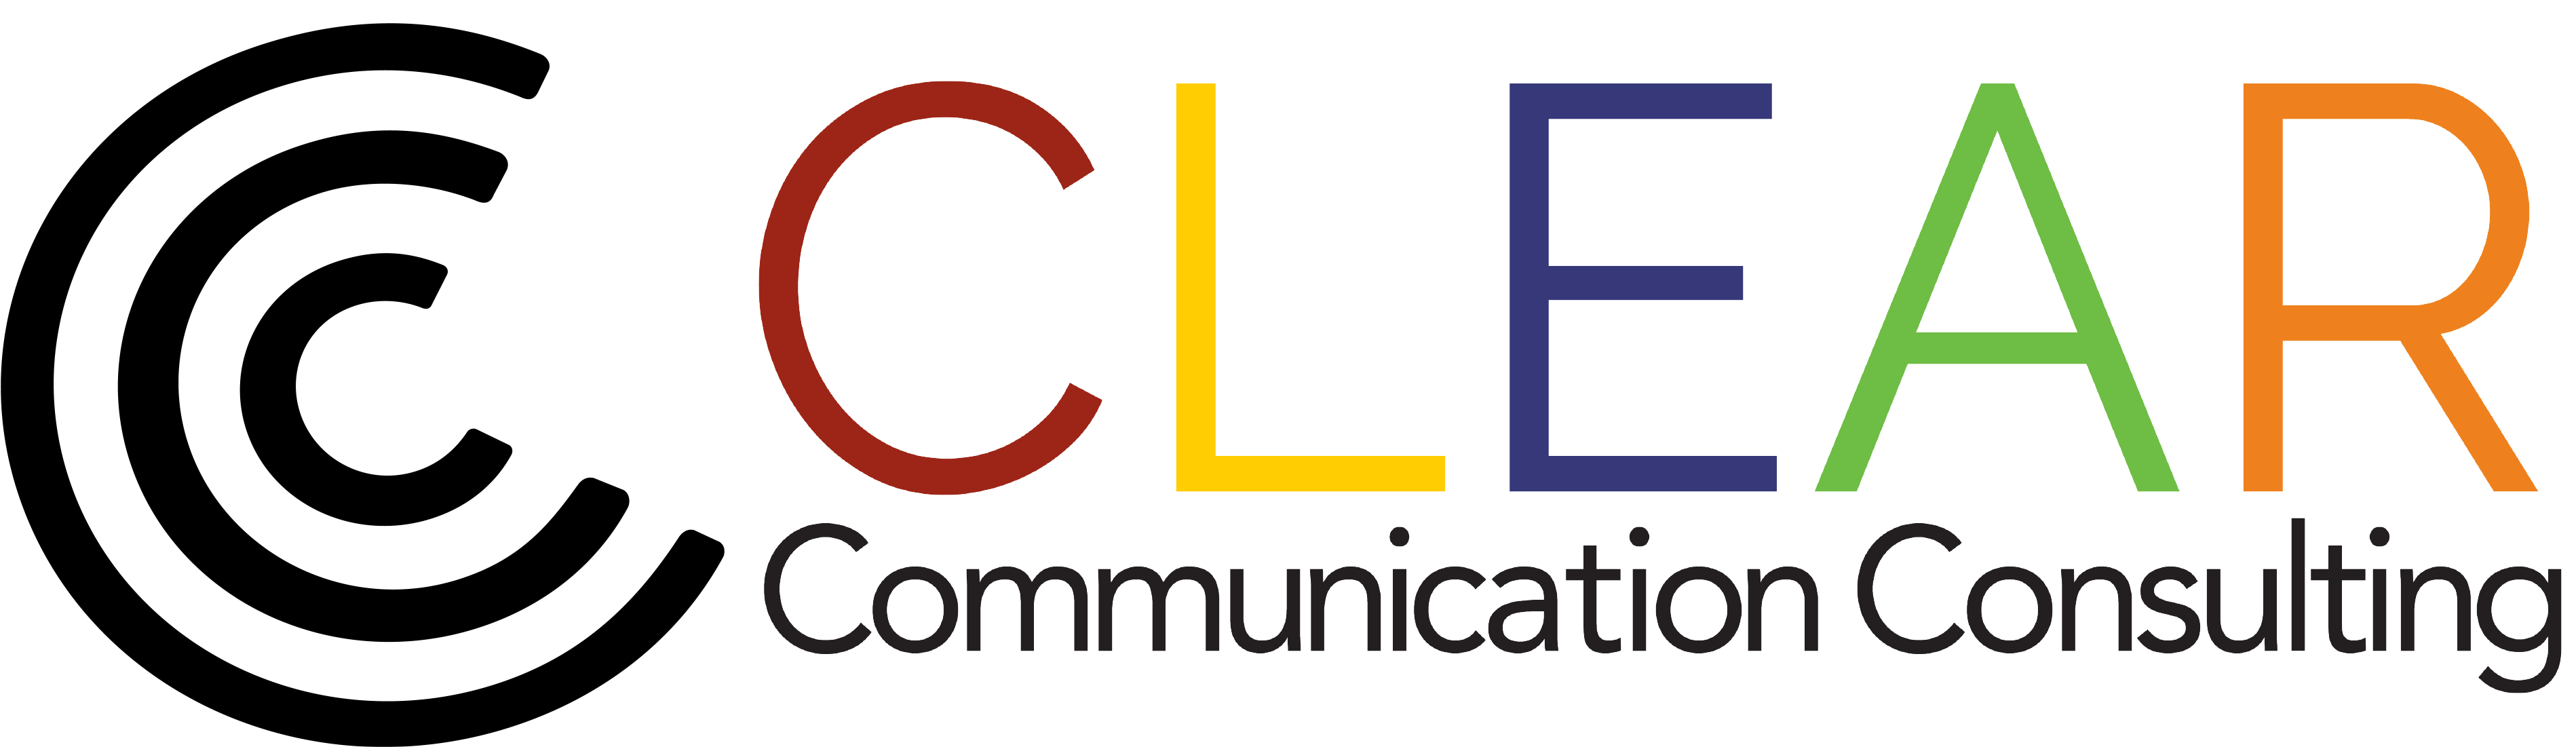 CLEAR Communication Consulting